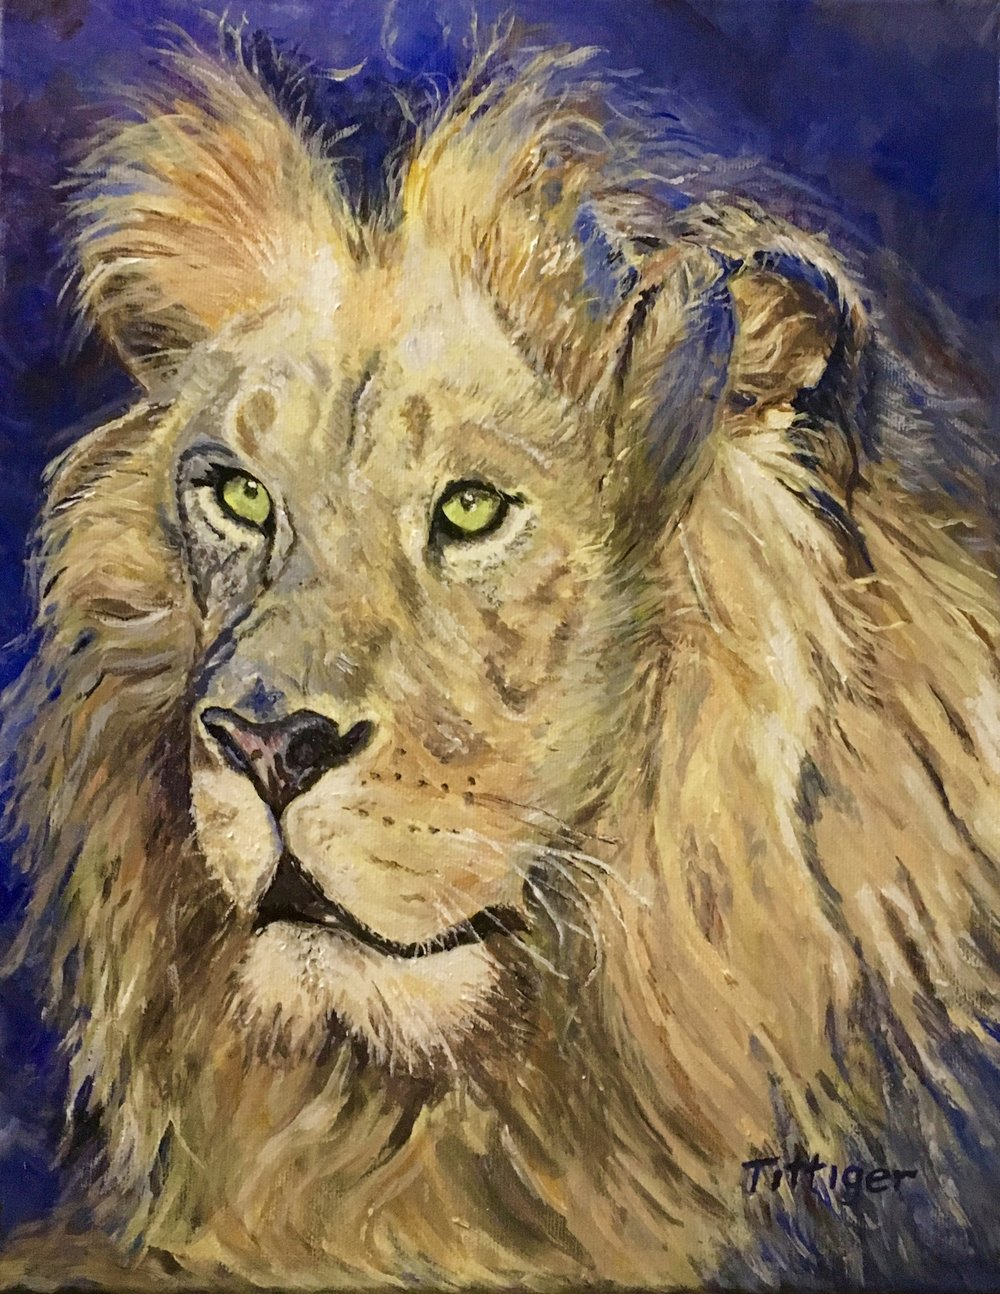 JUDAH    Judah is an 11 x 14 Acrylic Painting. I call it Judah in reference to the Lion of the tribe of Judah.